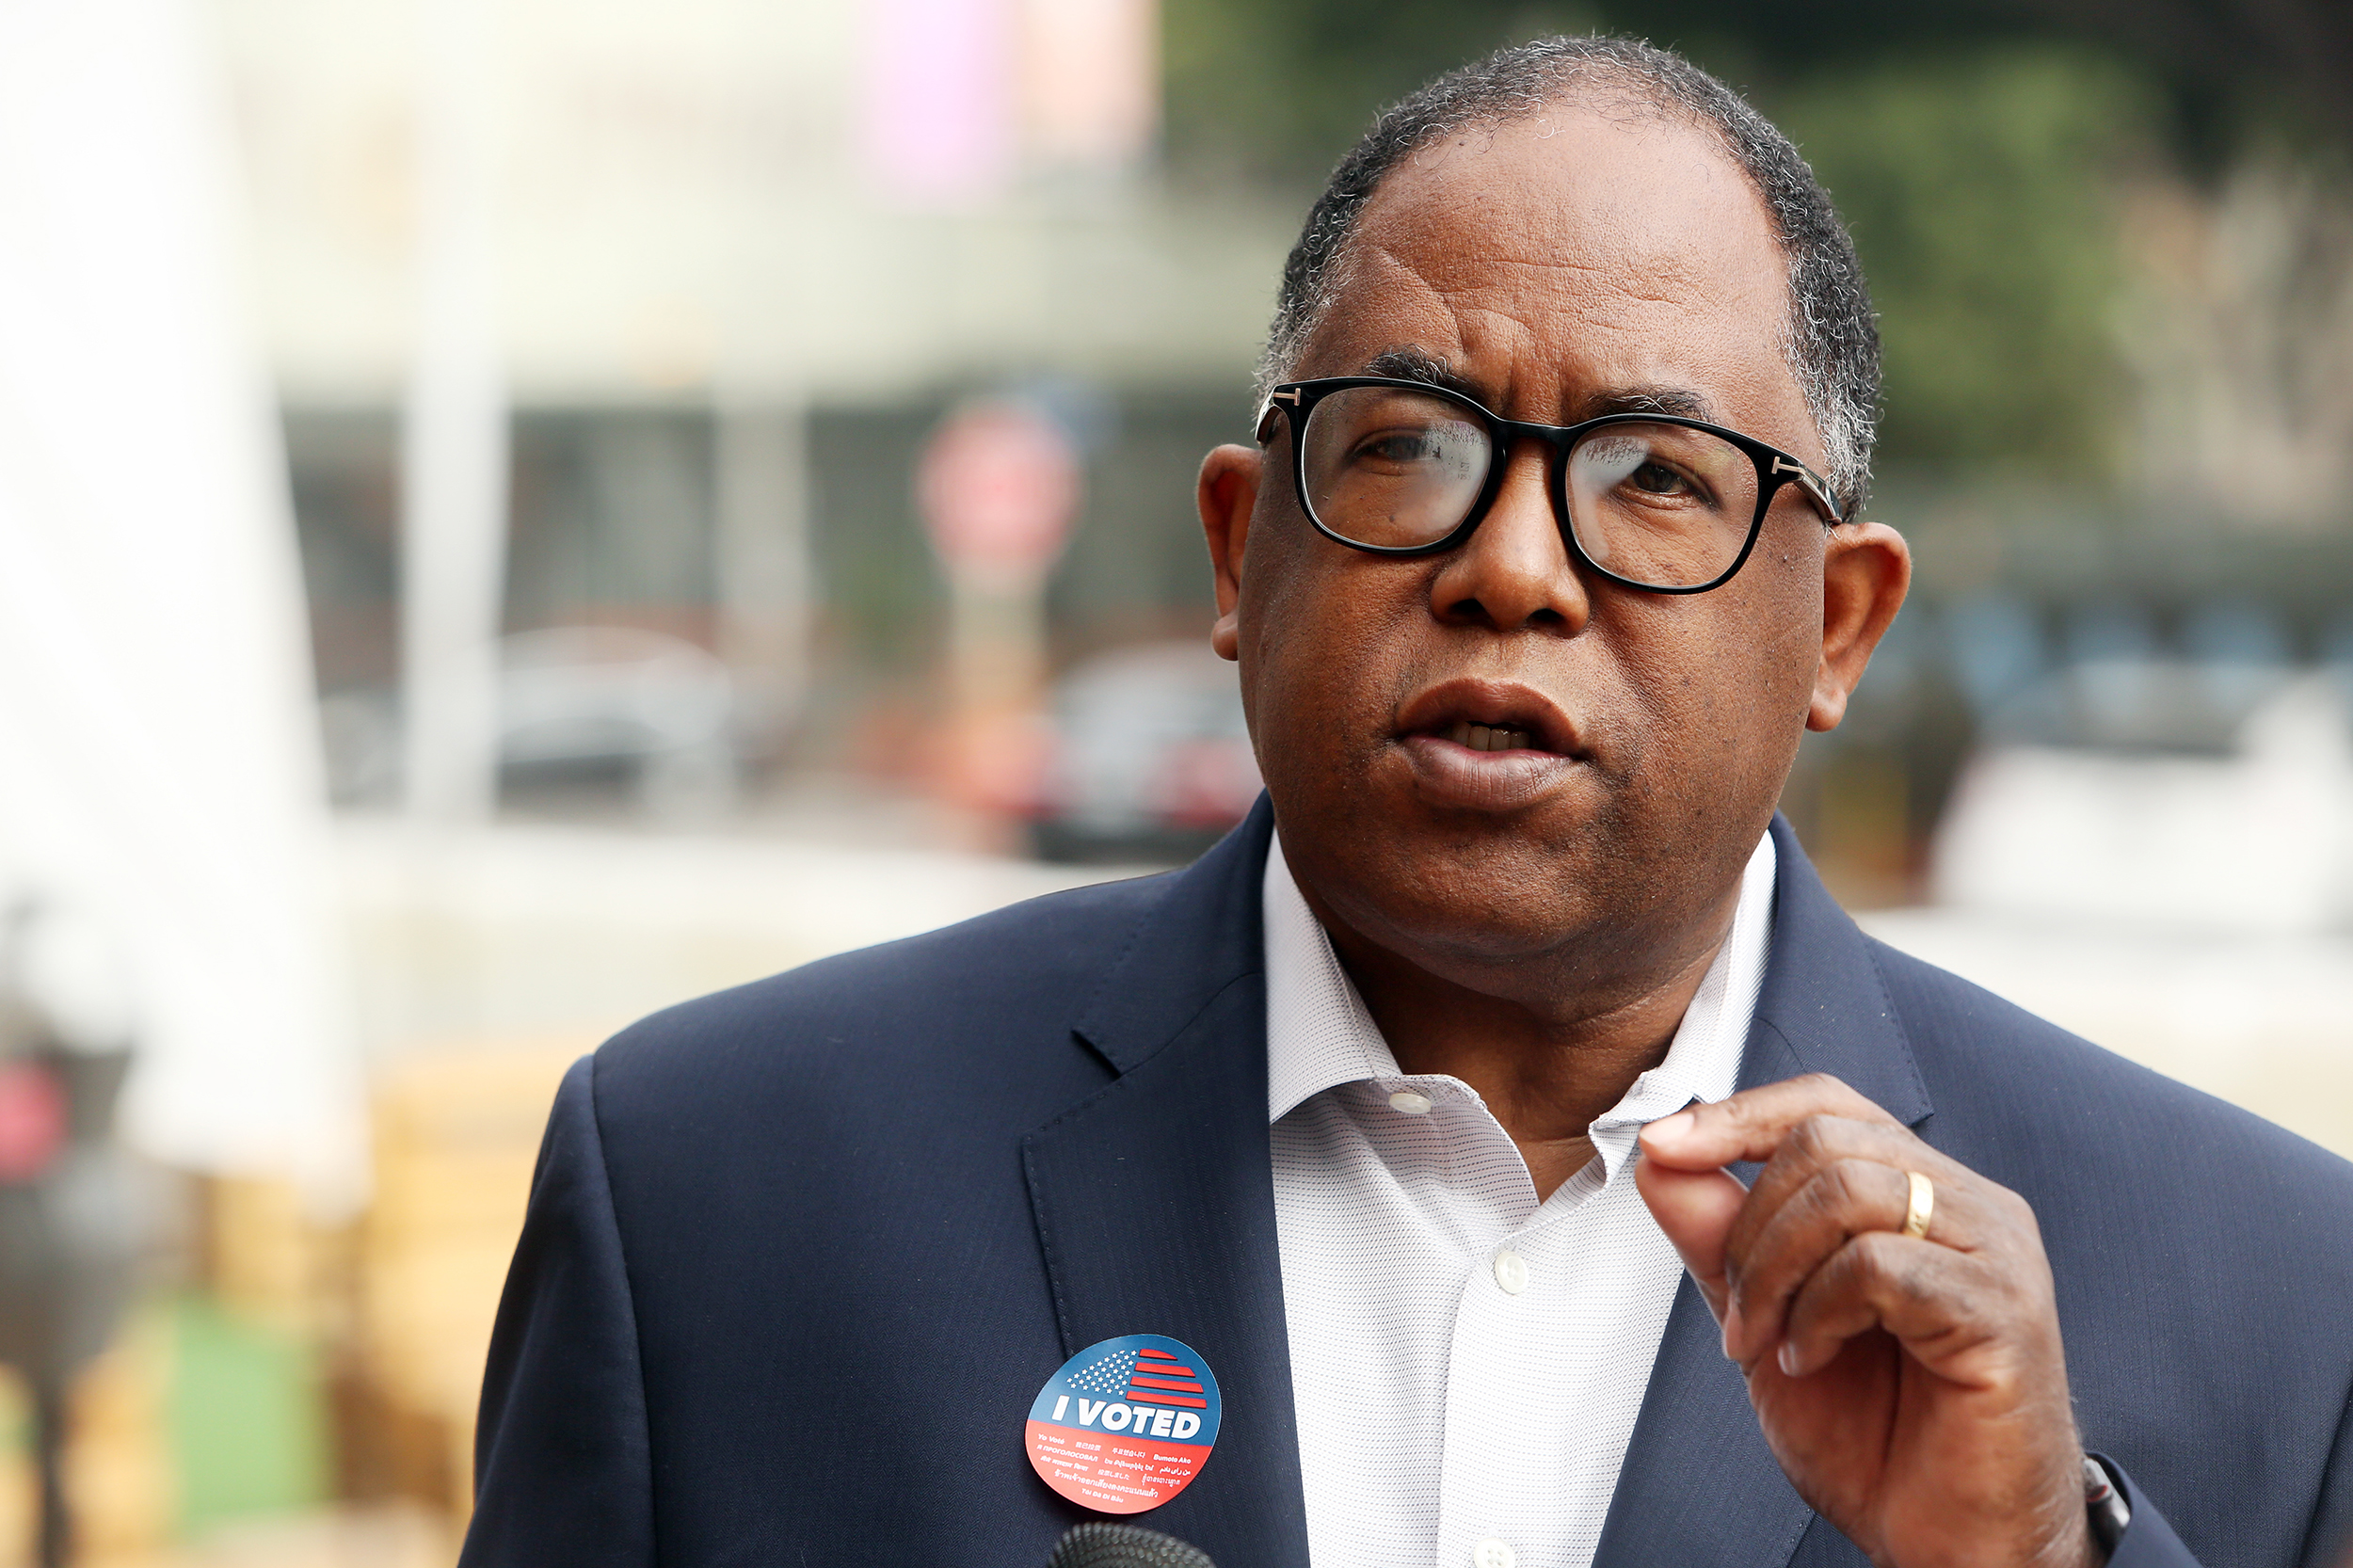 Los-Angeles-City-Council-member-Mark-Ridley-Thomas-indicted-in-bribery-case